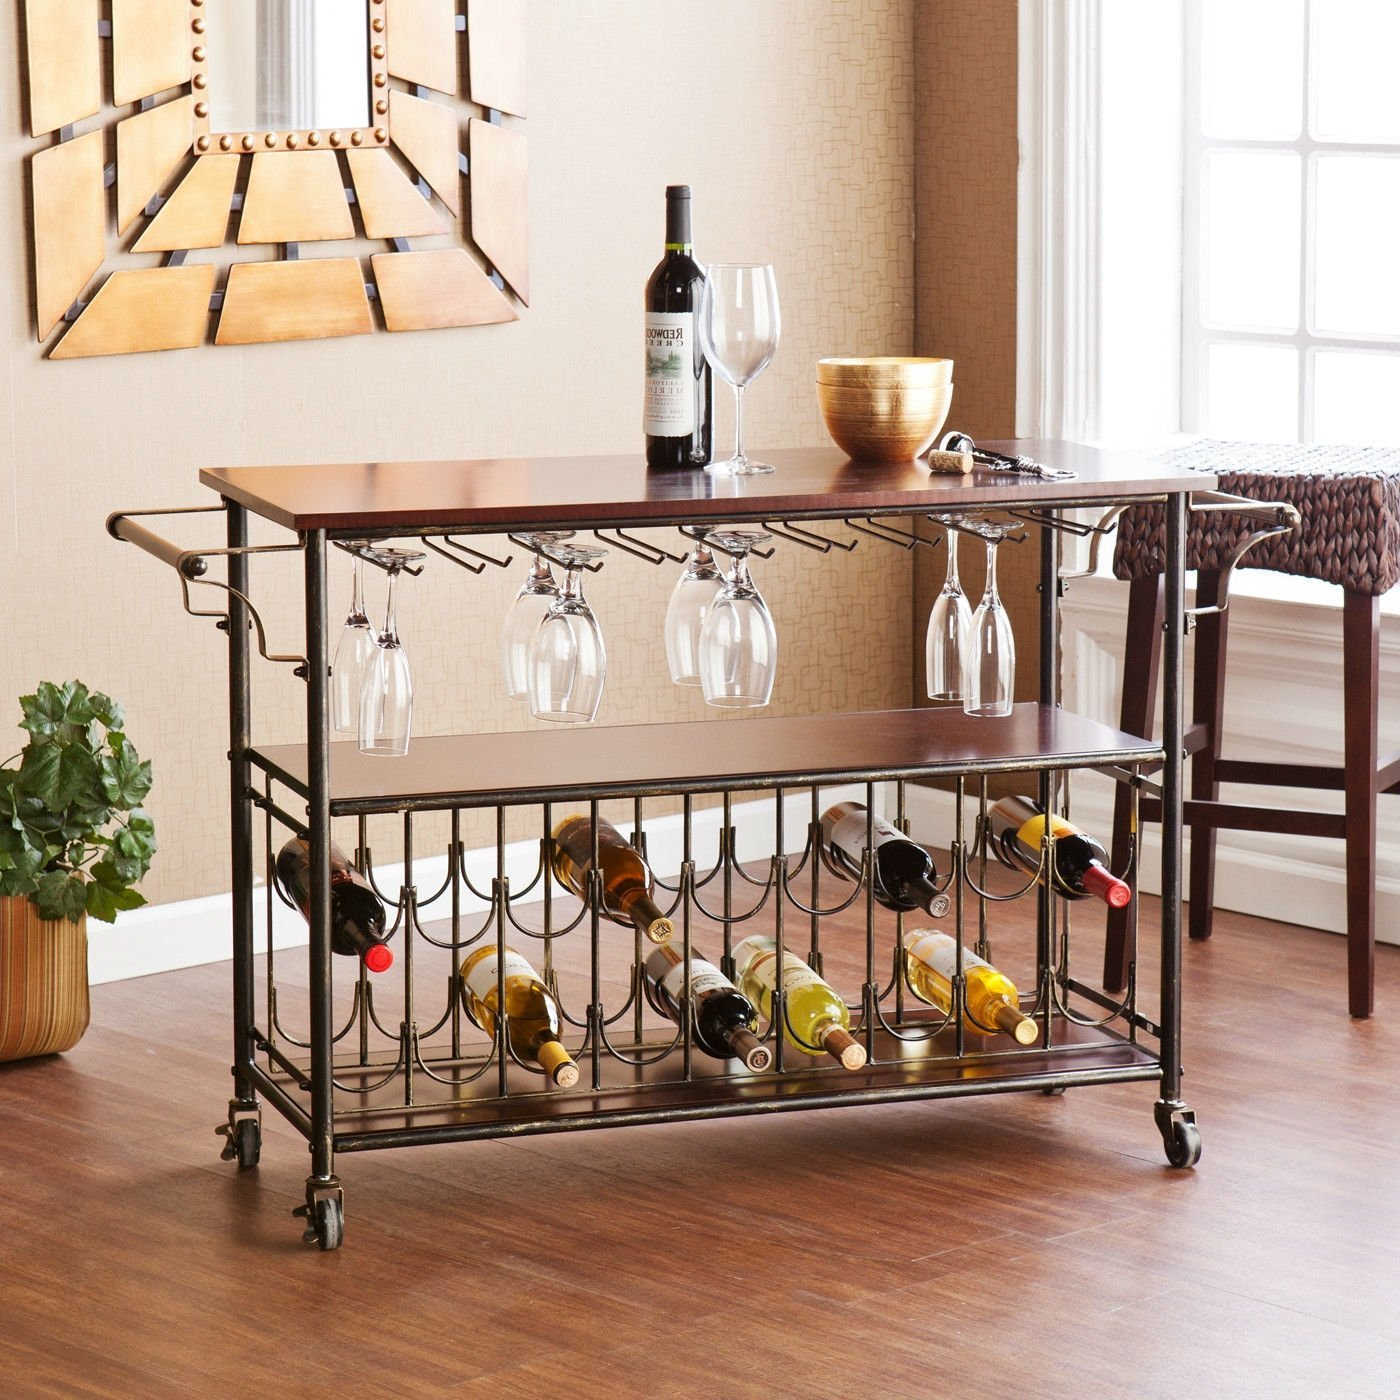 Wood Top Kitchen Island Wine Rack Cart with Storage Shelf